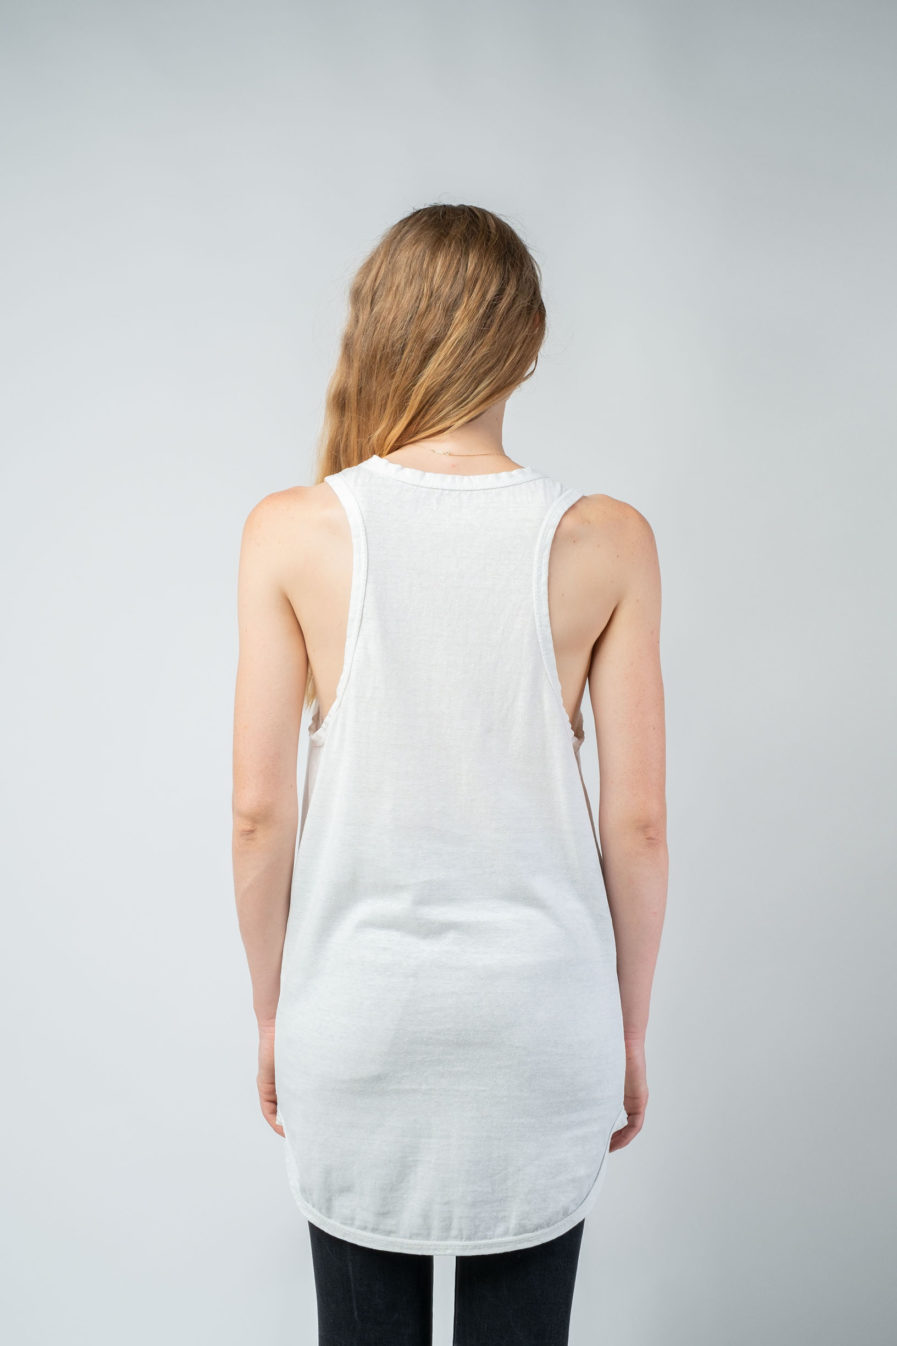 WOMAN unisex singlet tanktop hemp organic cotton OTIS new Blank canvas back